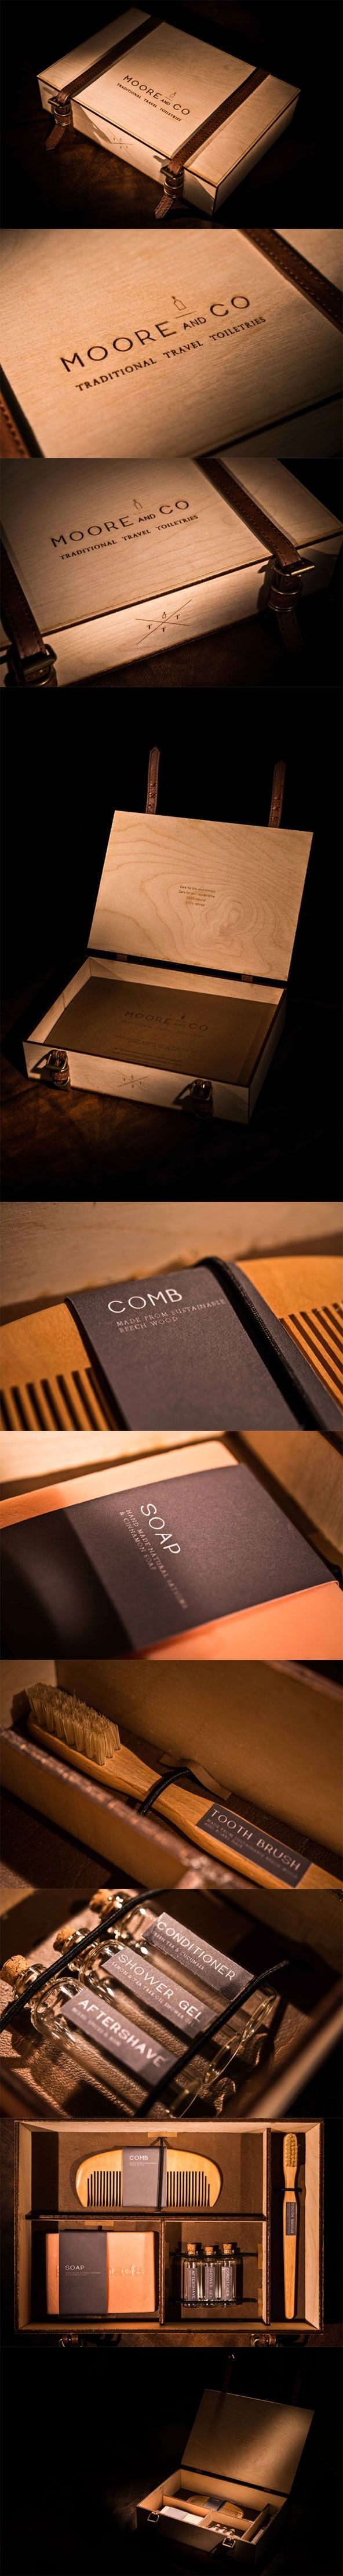 Limited edition luxury hand made travel set packaging. Wood, leather and real branding.